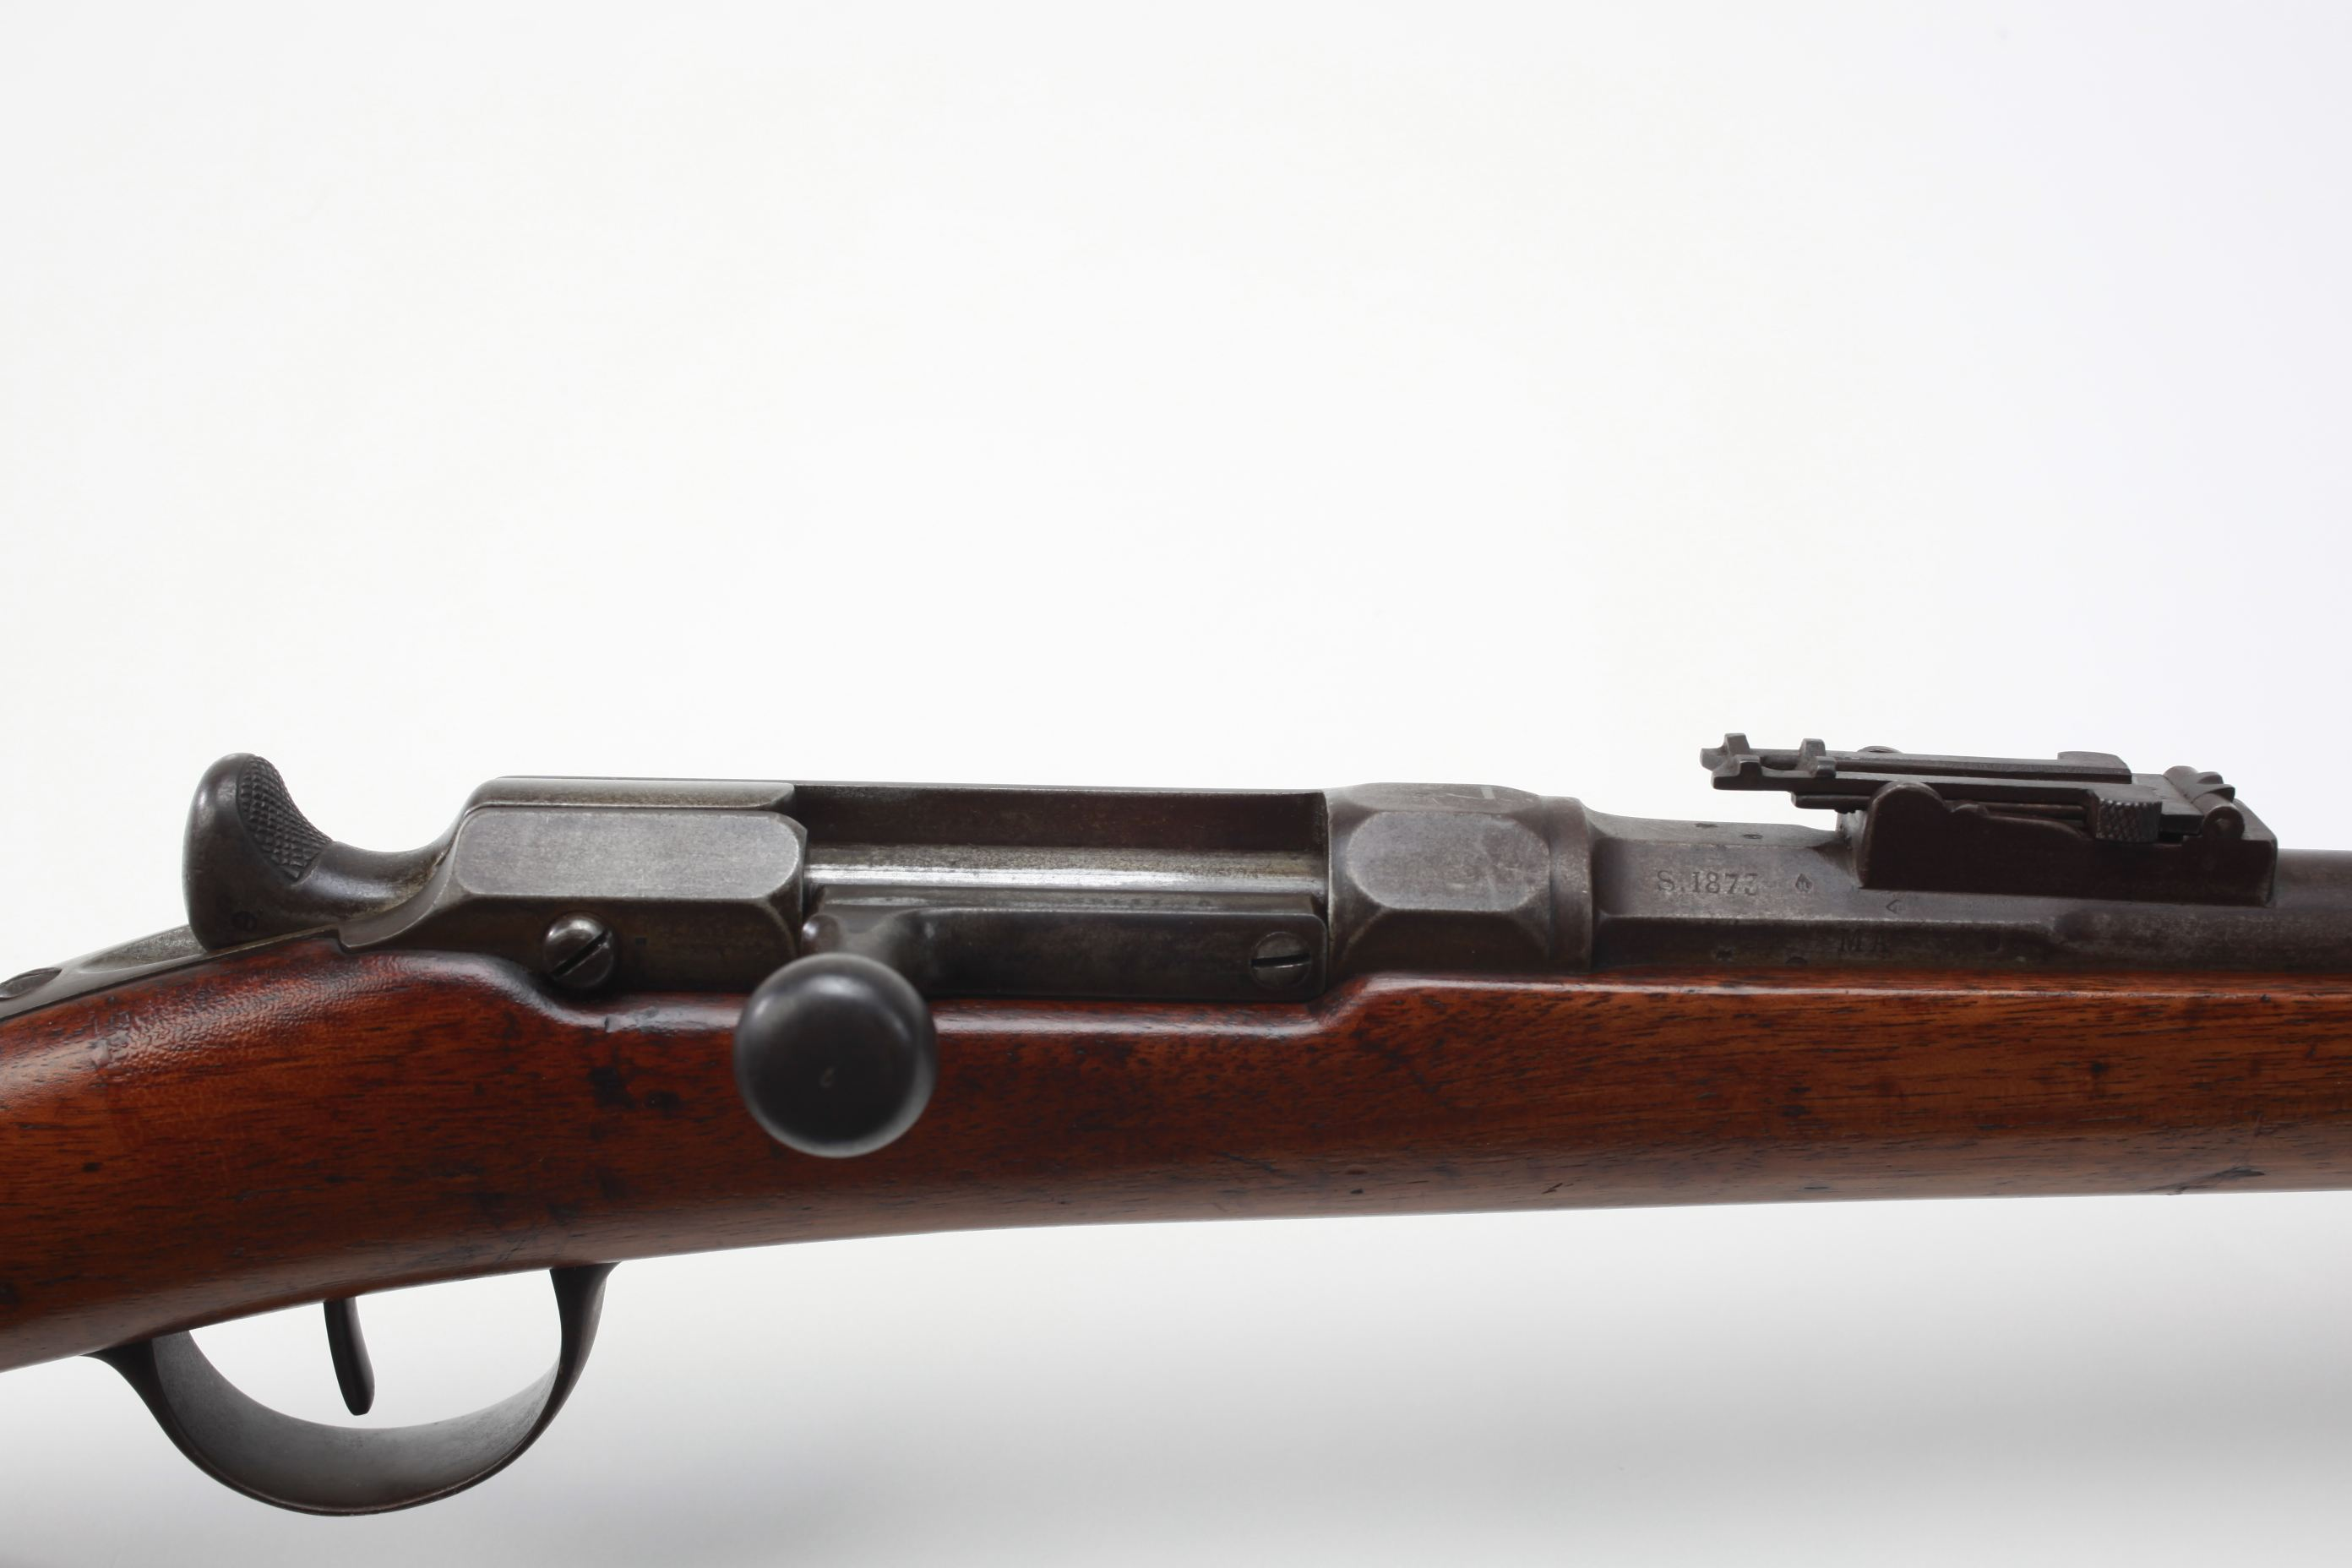 French Chassepot Model 1866 rifle